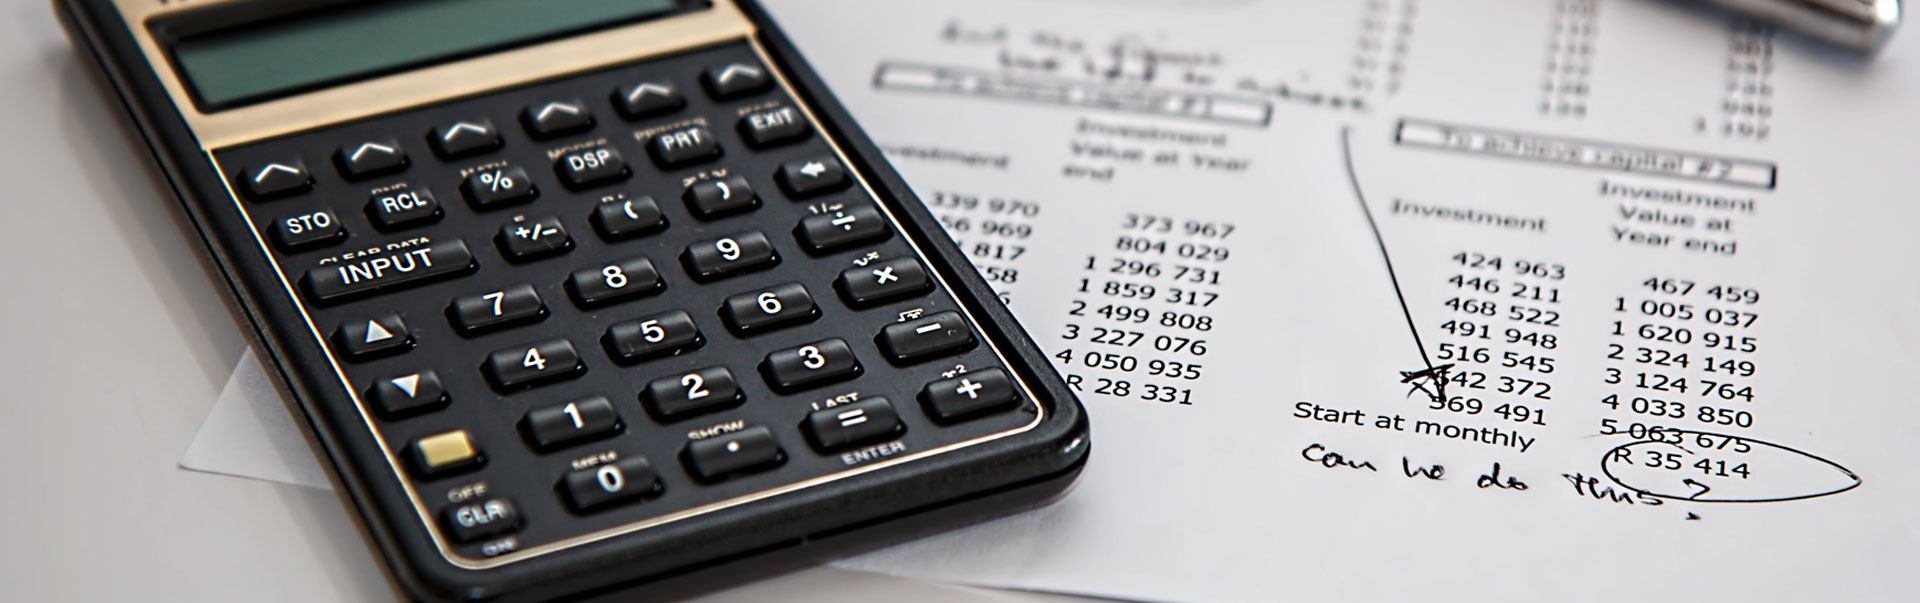 Pensions, investments and tax claims